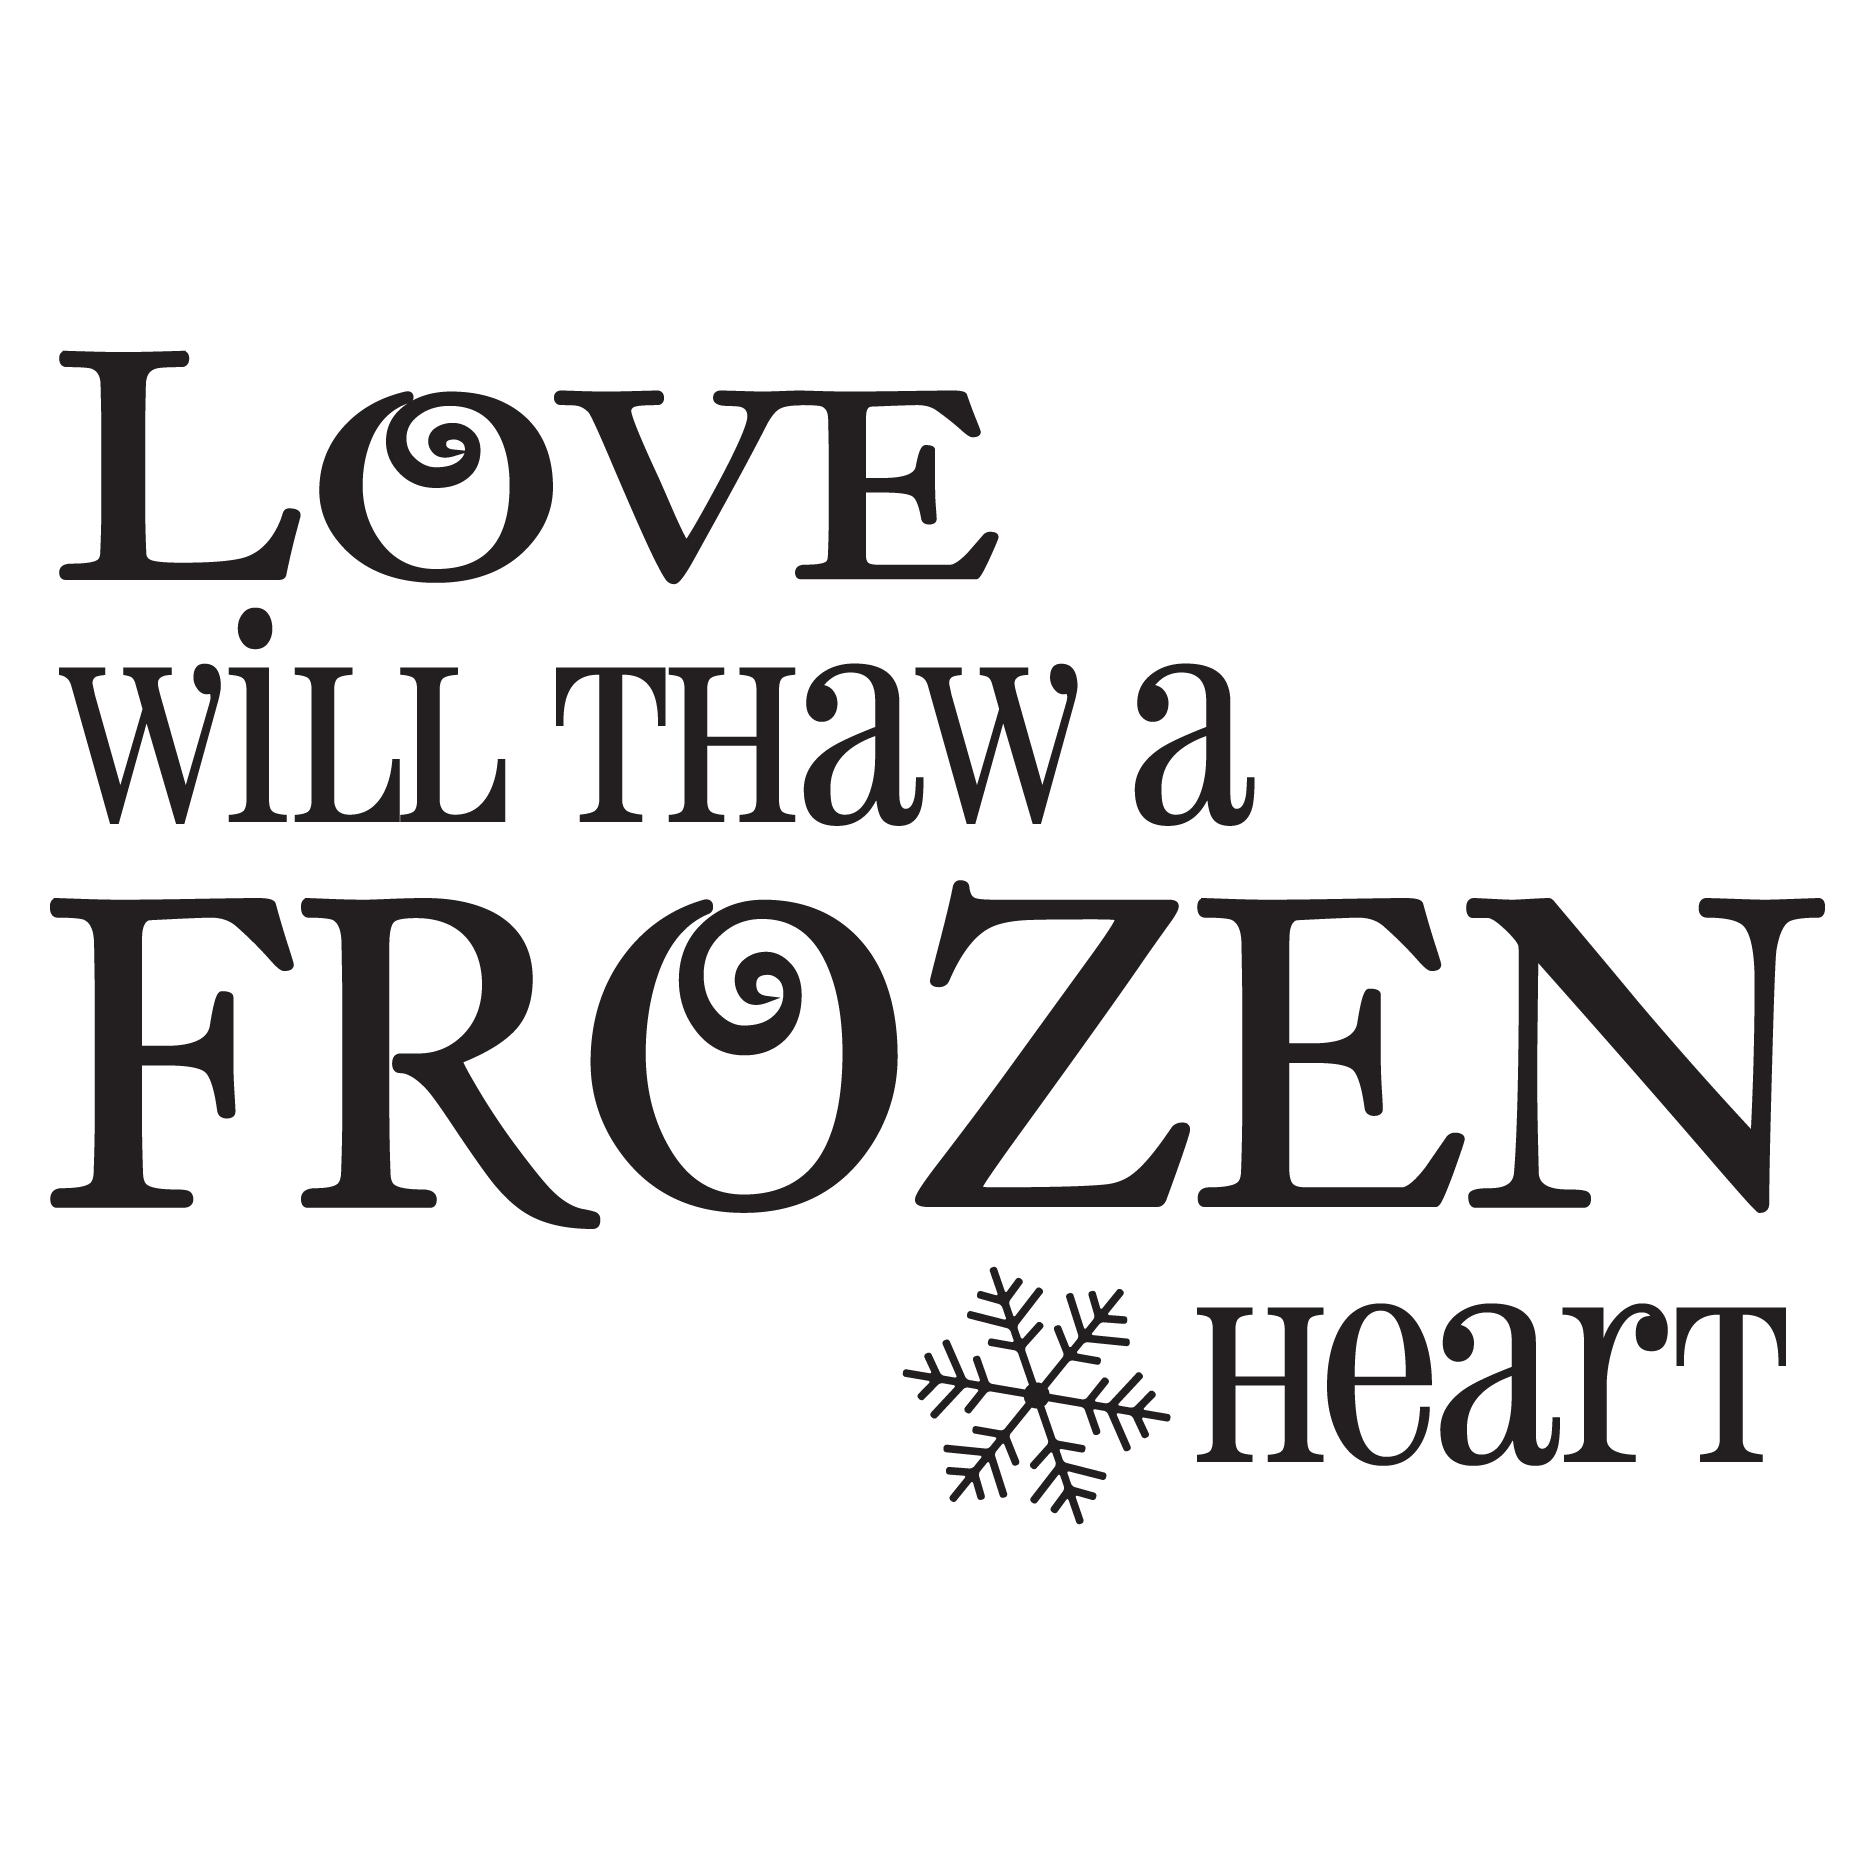 Frozen Heart Wall QuotesTM Decal